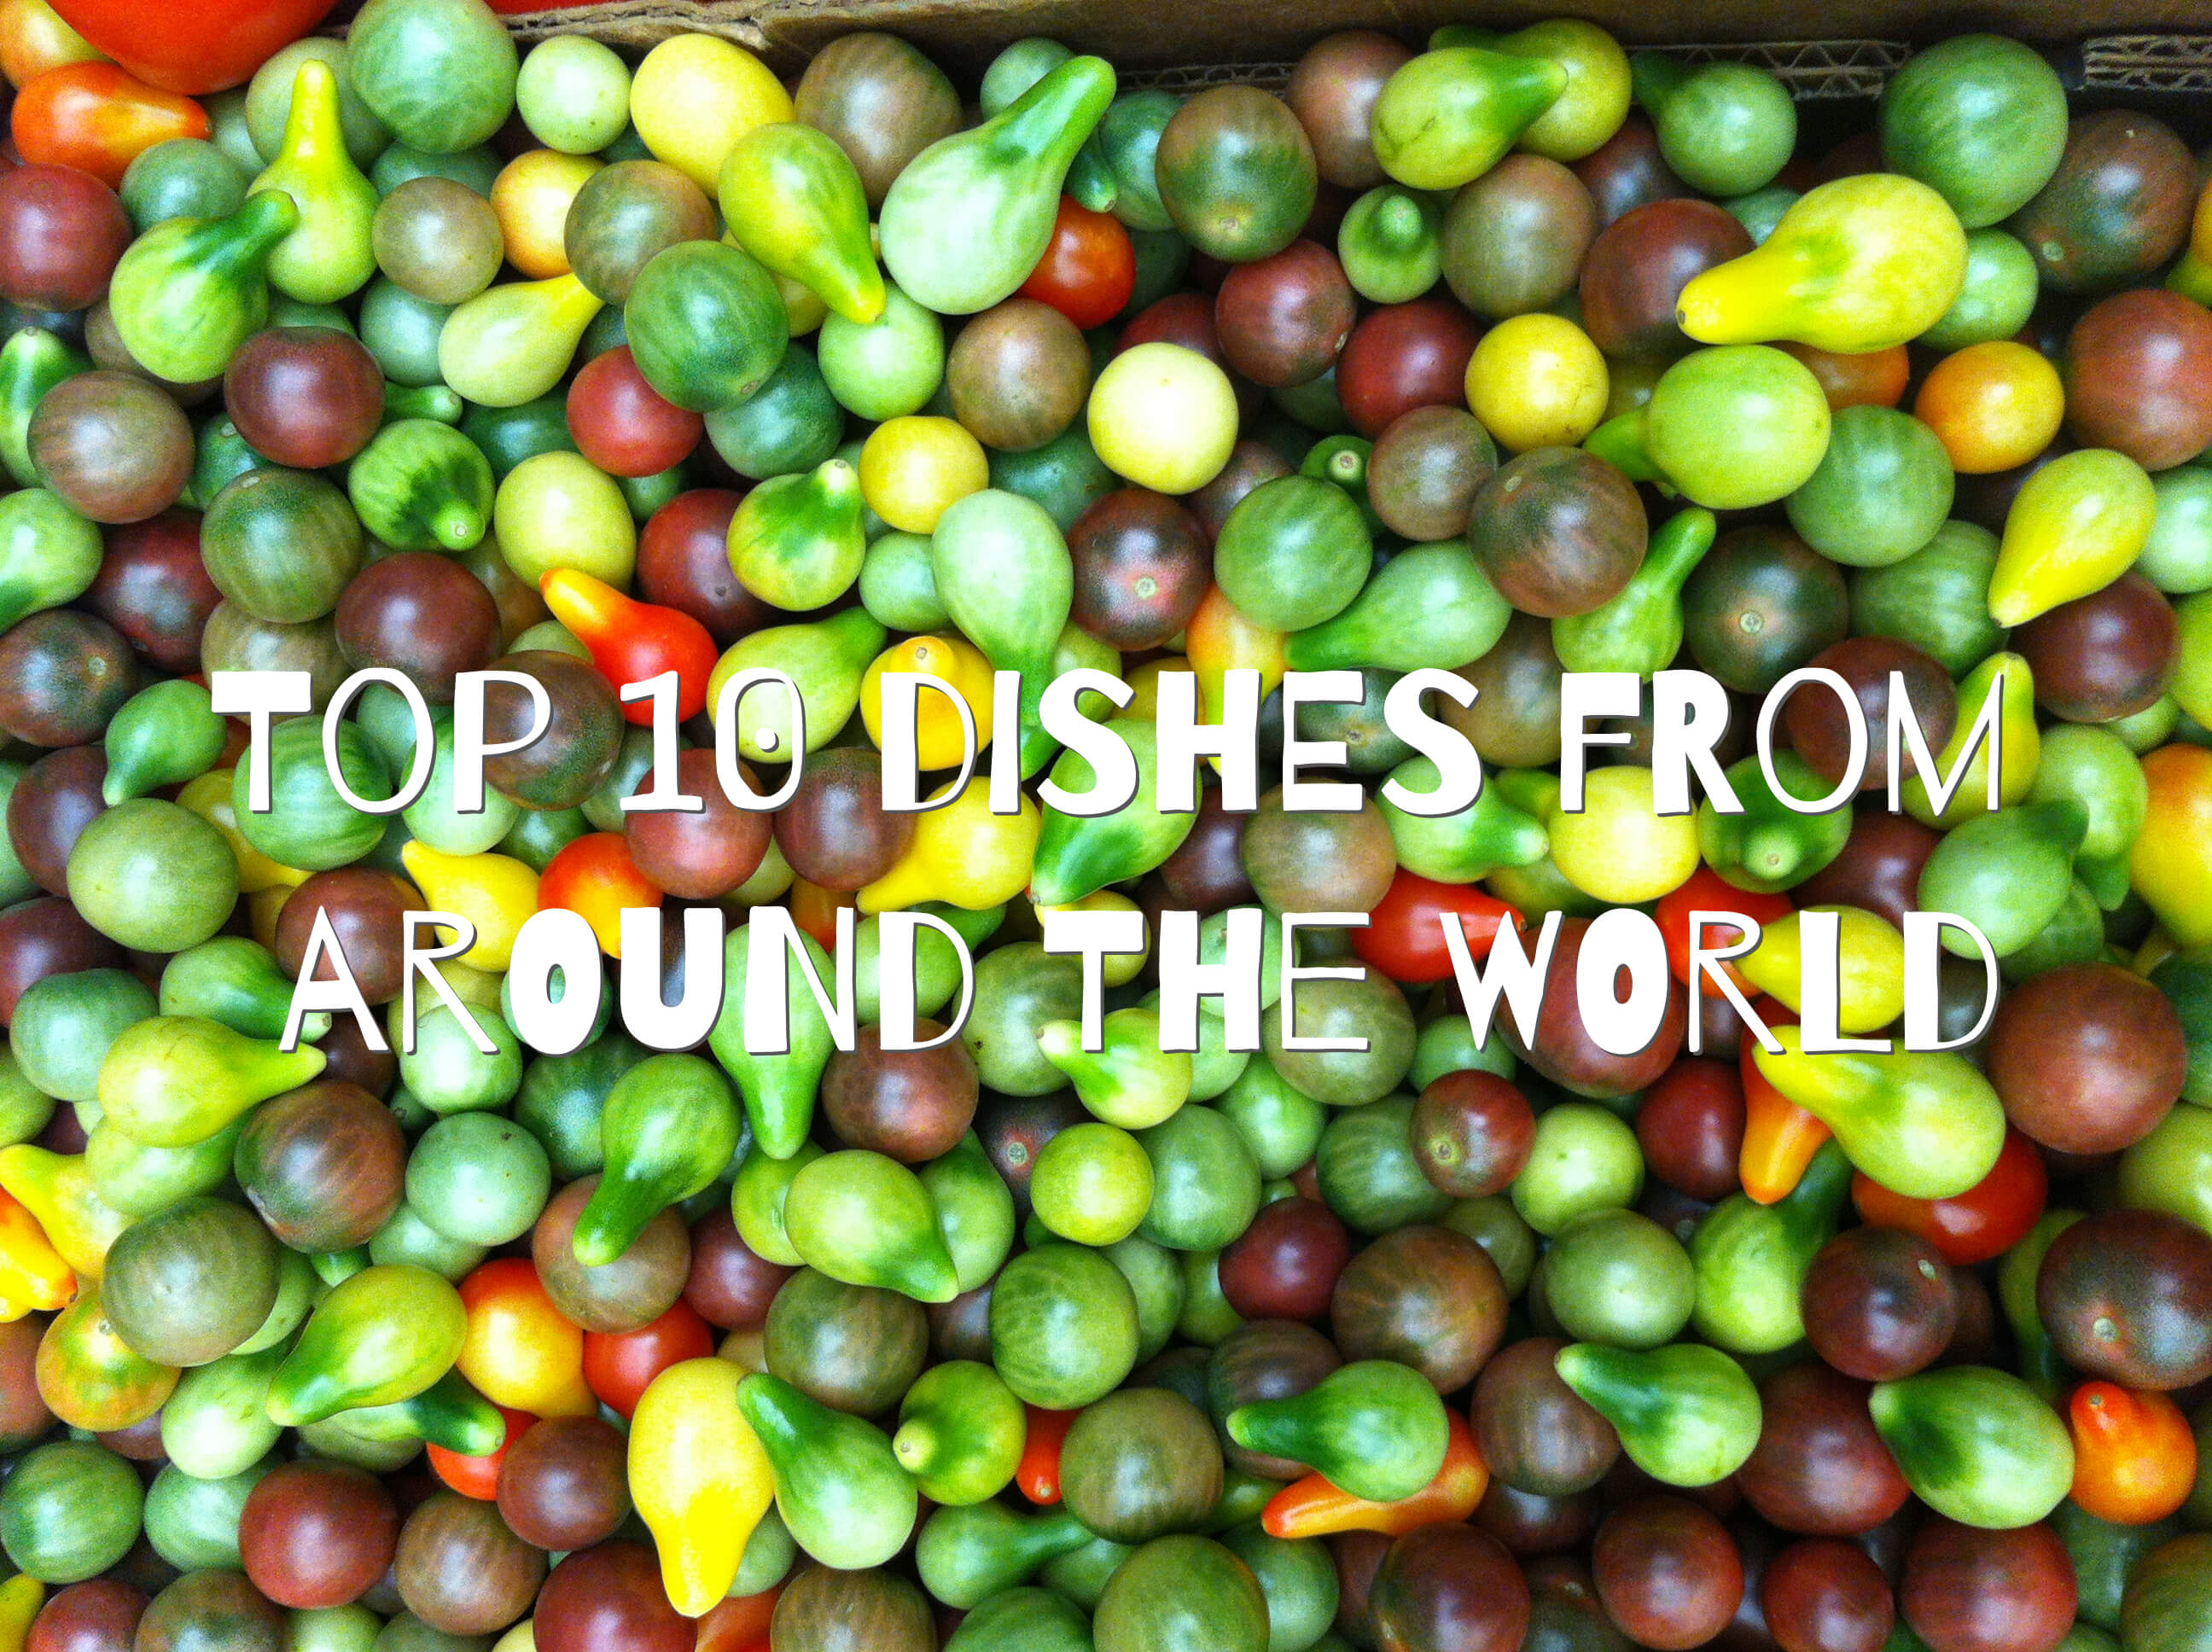 My top 10 dishes: eating my way around the world